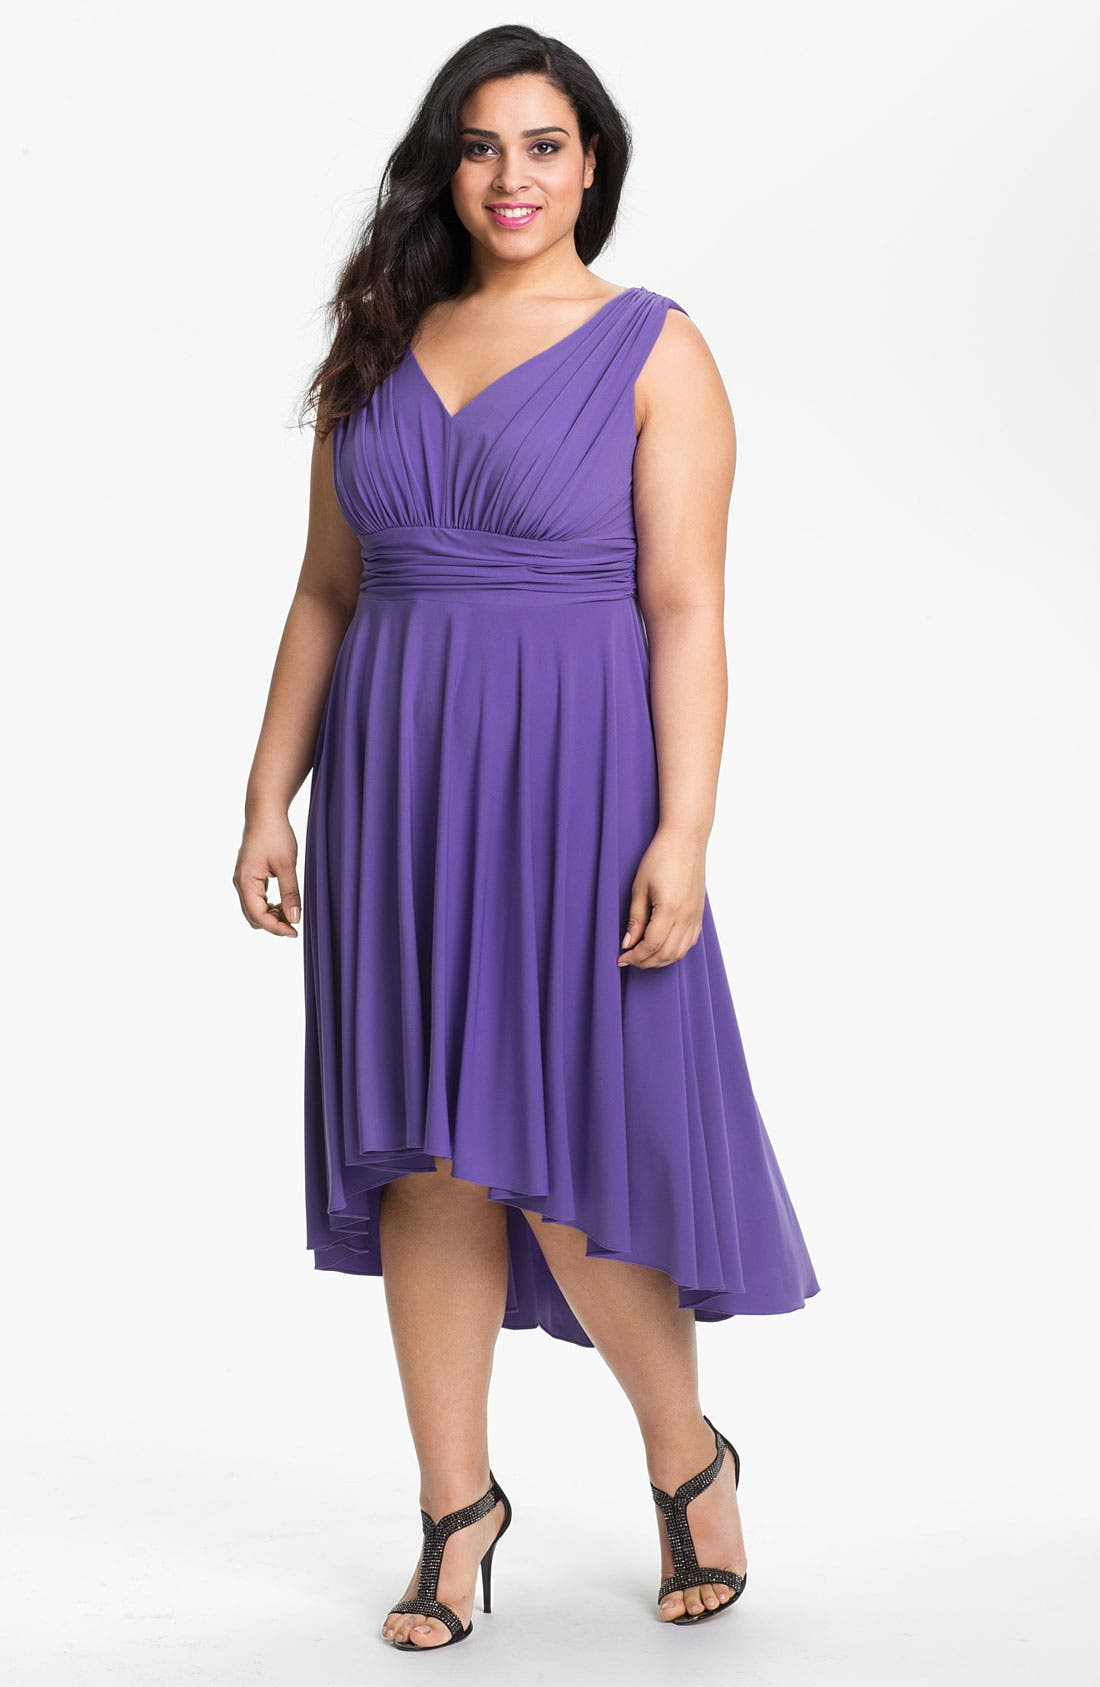 Alternate Image 1 Selected - Suzi Chin for Maggy Boutique High/Low Jersey Dress (Plus Size) (Online Only)